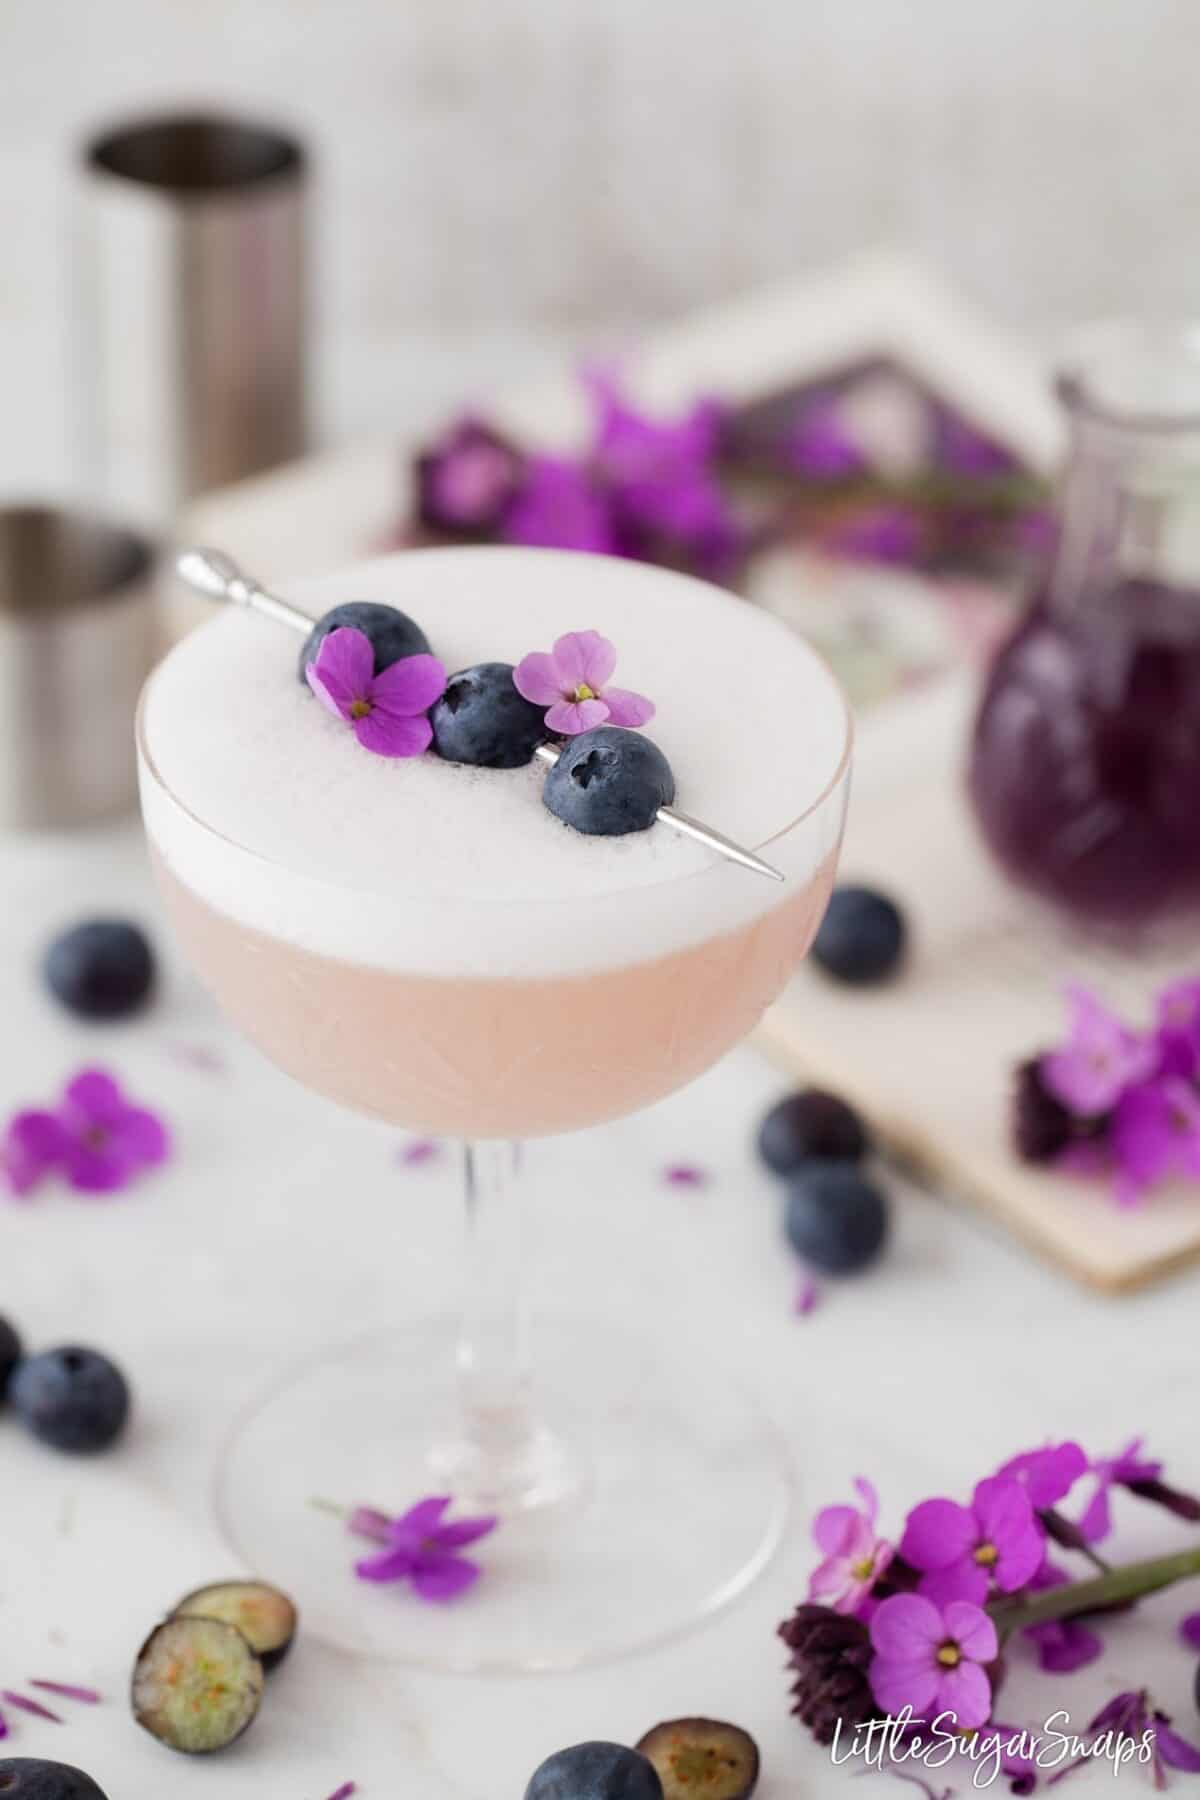 Violet Blueberry Gin Sour garnisged with blueberries and flowers